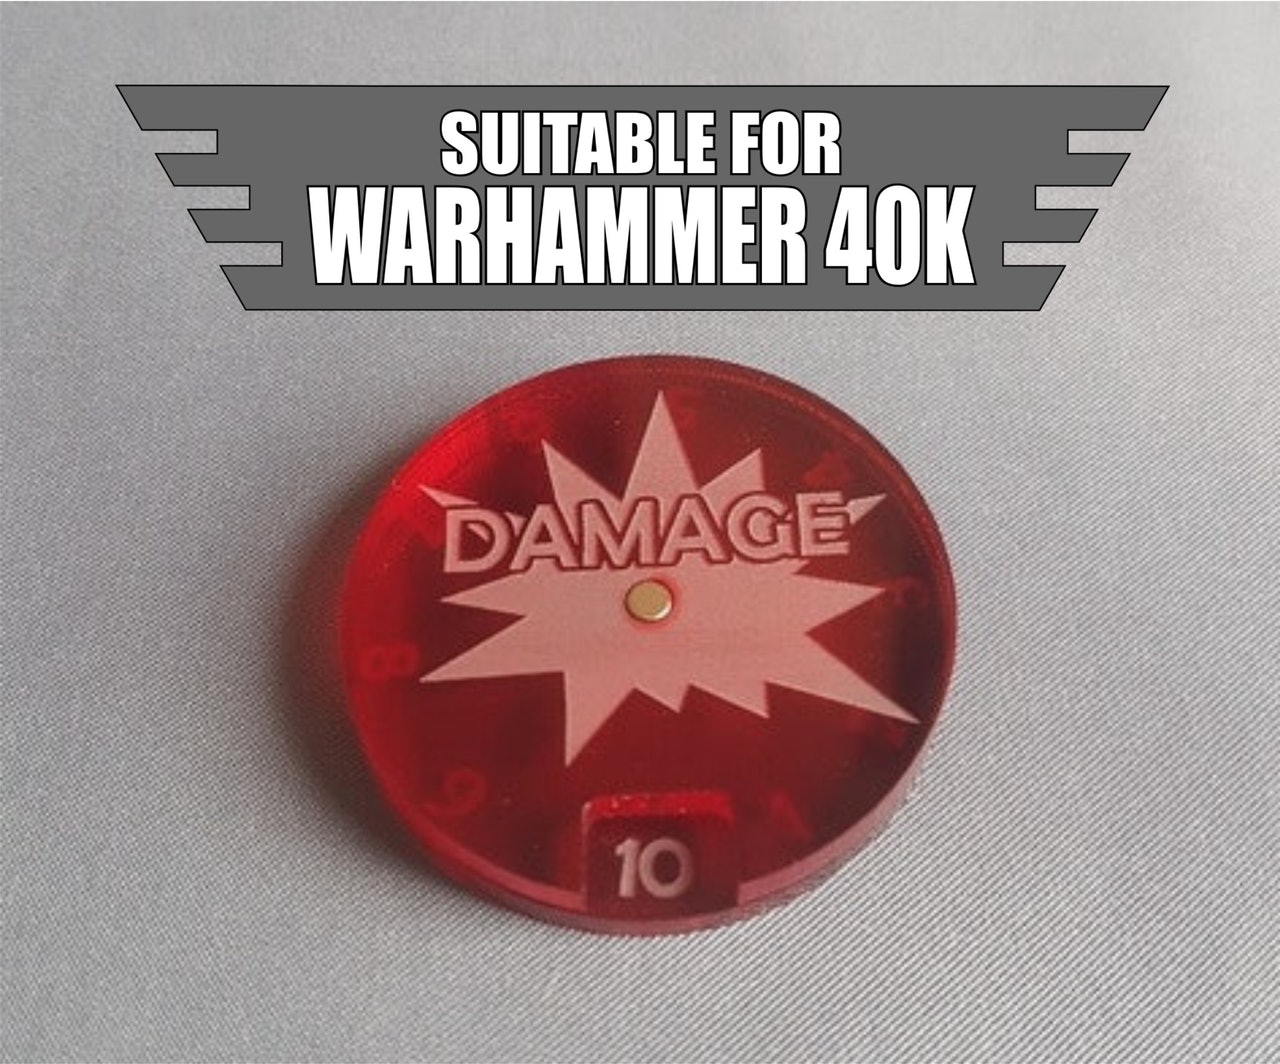 Suitable for Warhammer 40K